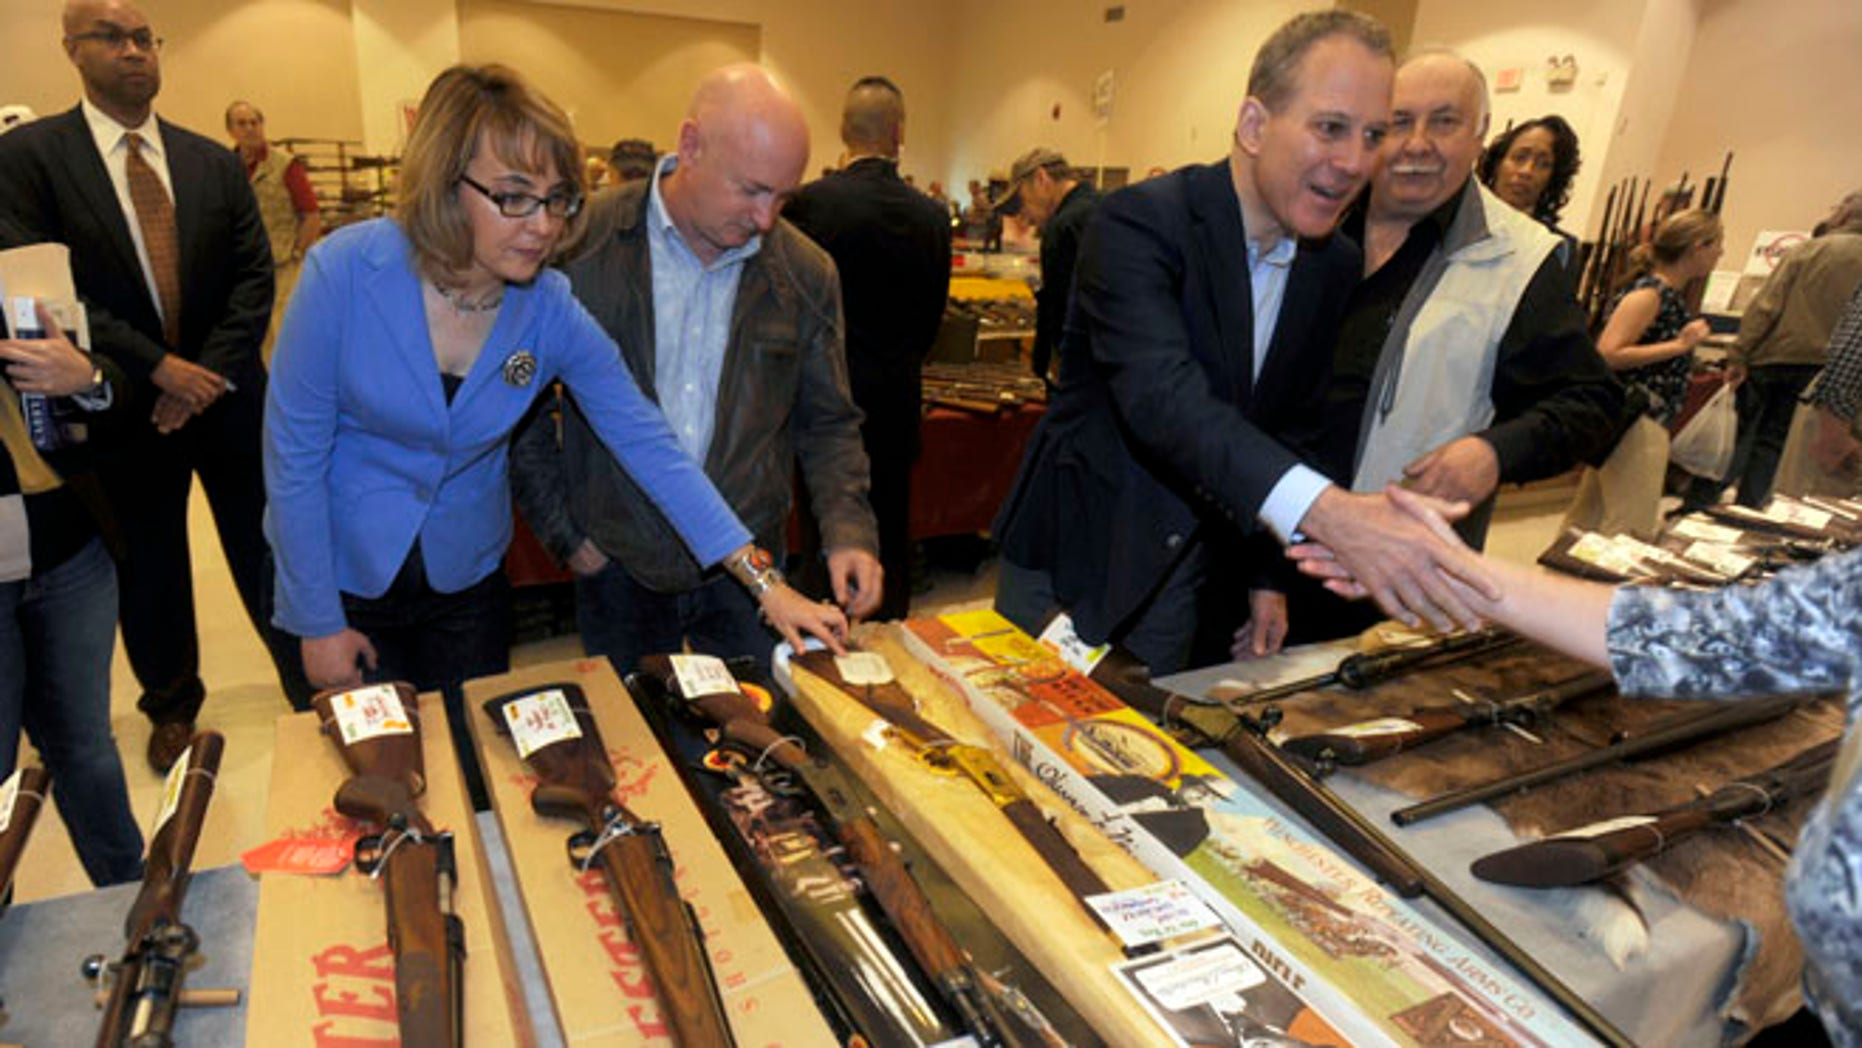 FILE: Oct. 13, 2013:  former Arizona Rep. Gabby Giffords and husband Mark Kelly, center, and New York Attorney General Eric Schneiderman, at the New EastCoast Arms Collectors Associates arms fair in Saratoga Springs, N.Y.